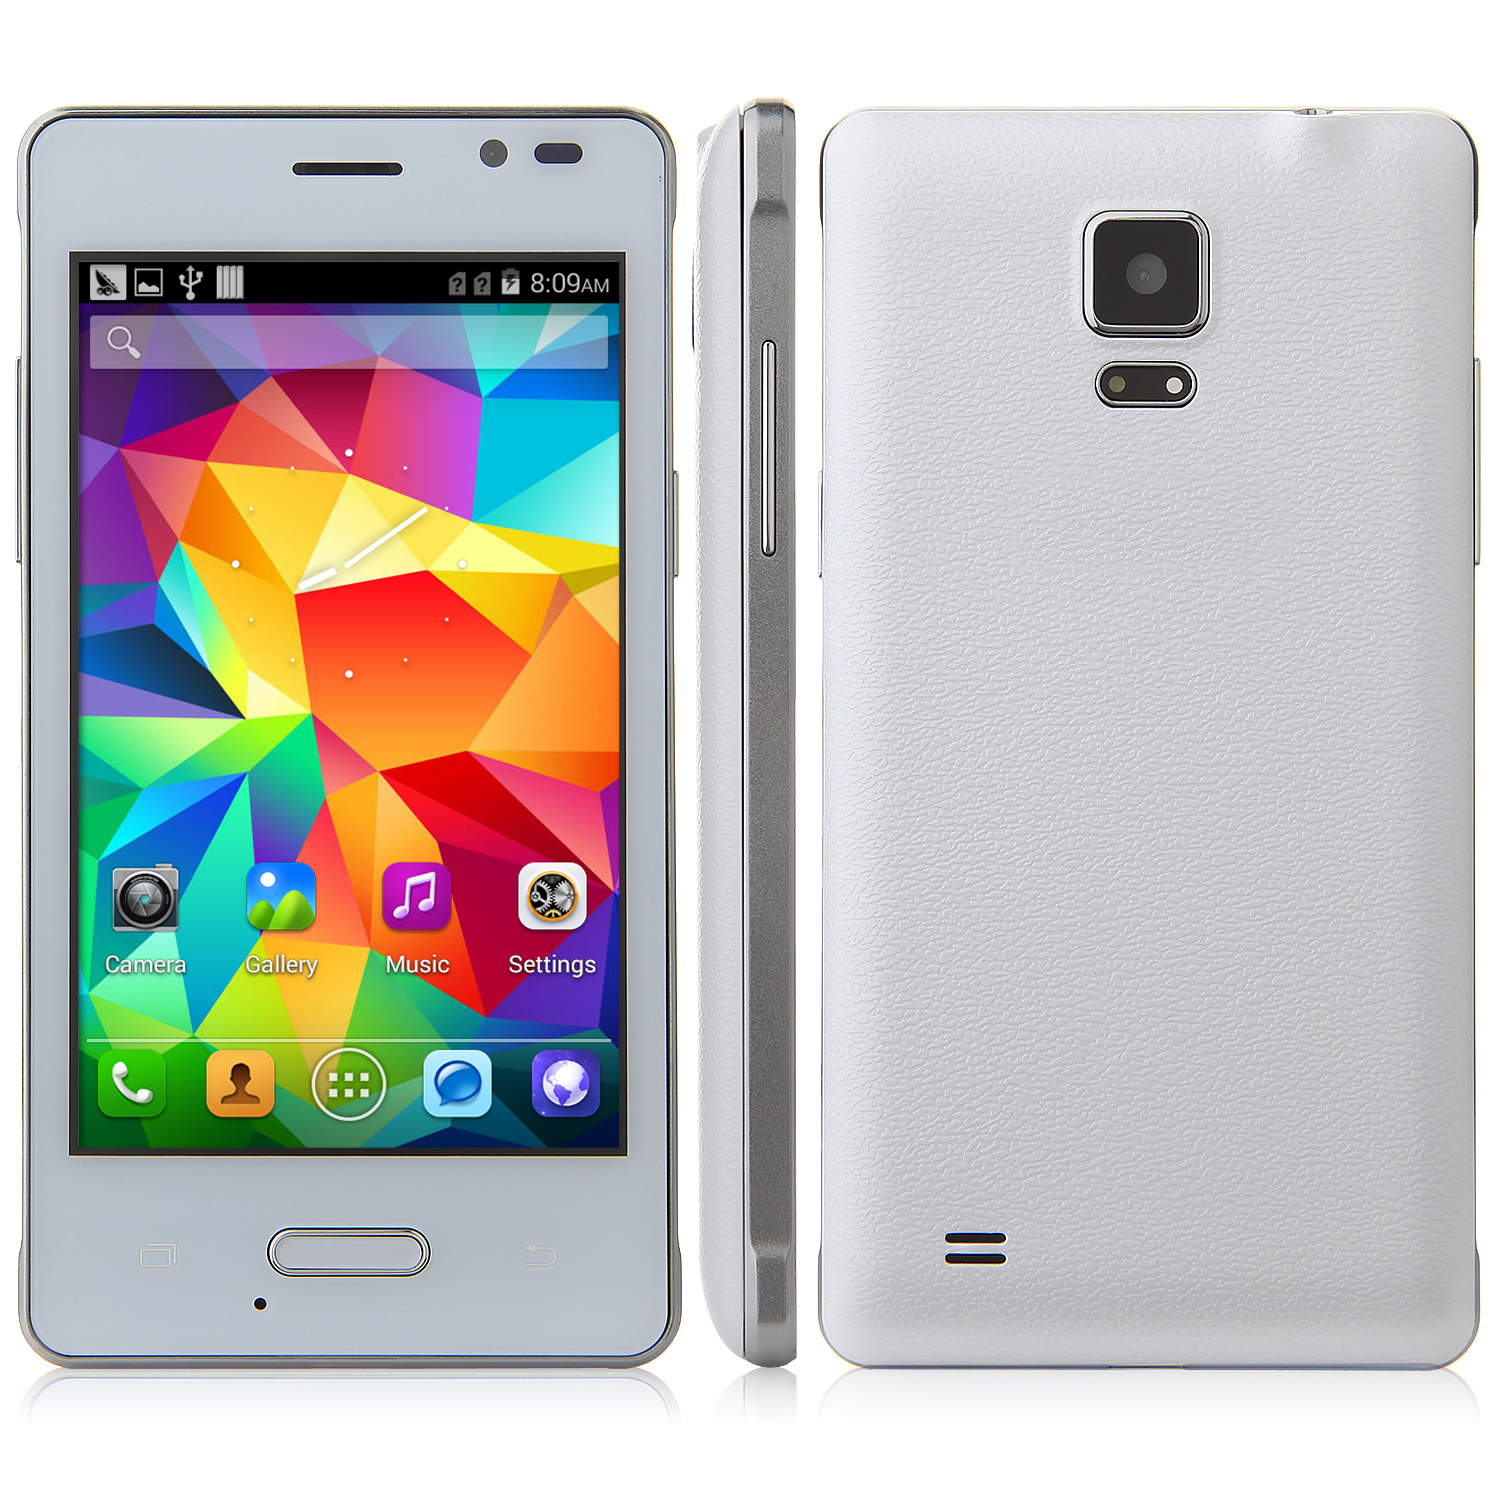 Tengda Q6 Smartphone Android 4.4 MTK6572 3G 4.0 Inch- White